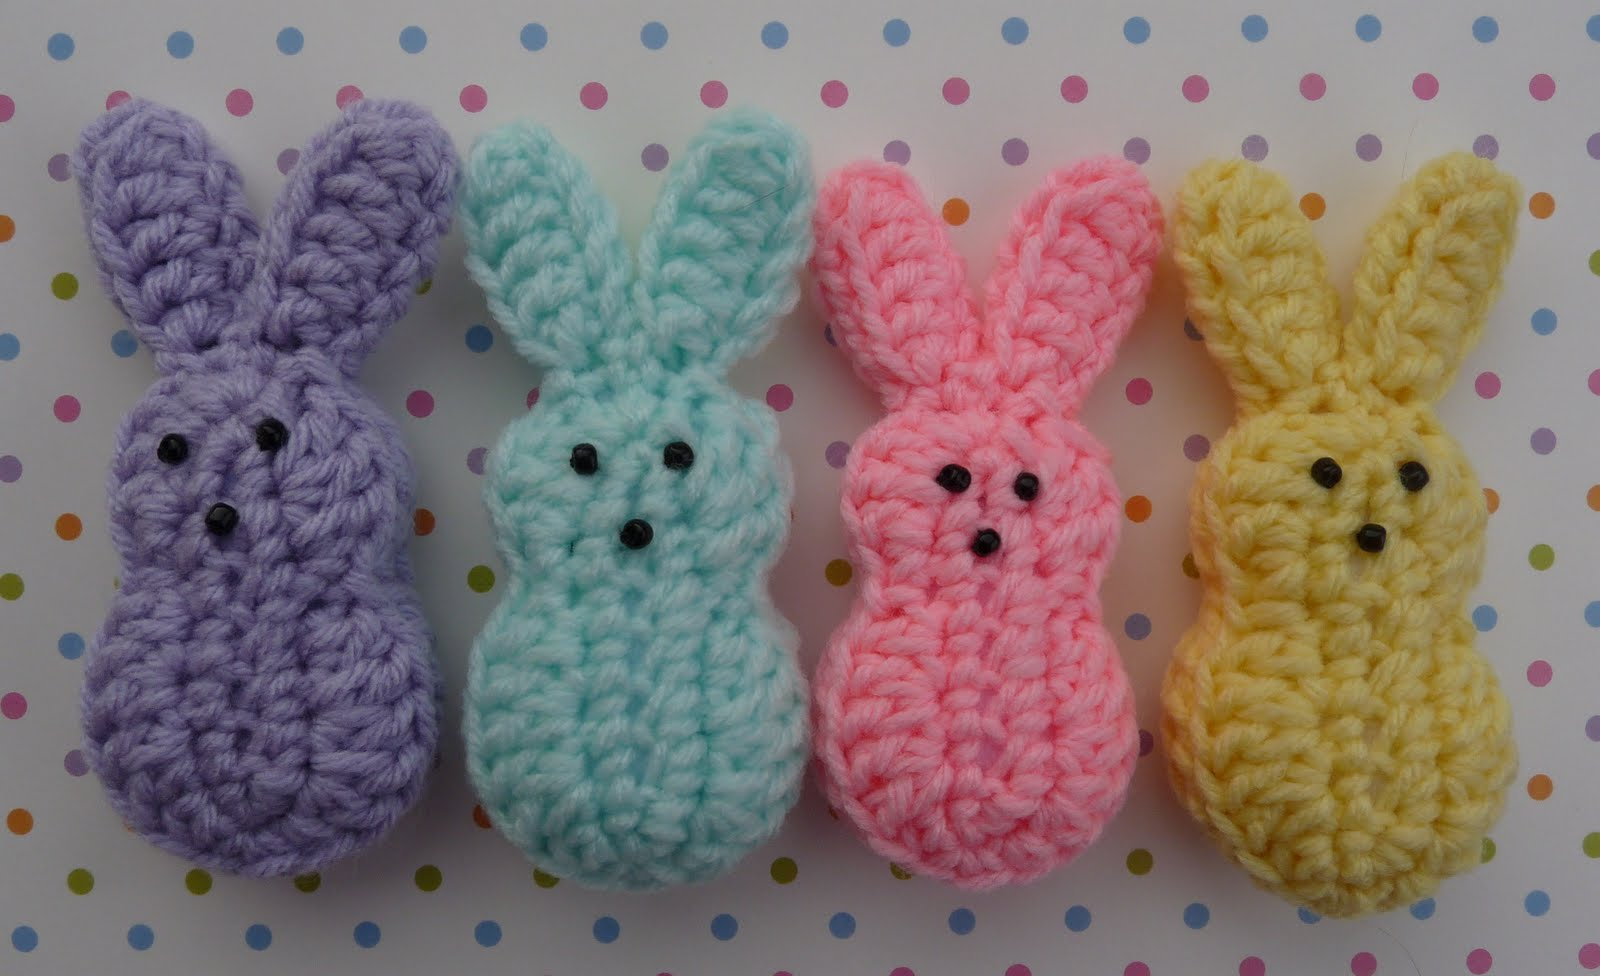 Easter Bunny Crochet Patterns Free - multiforme.top